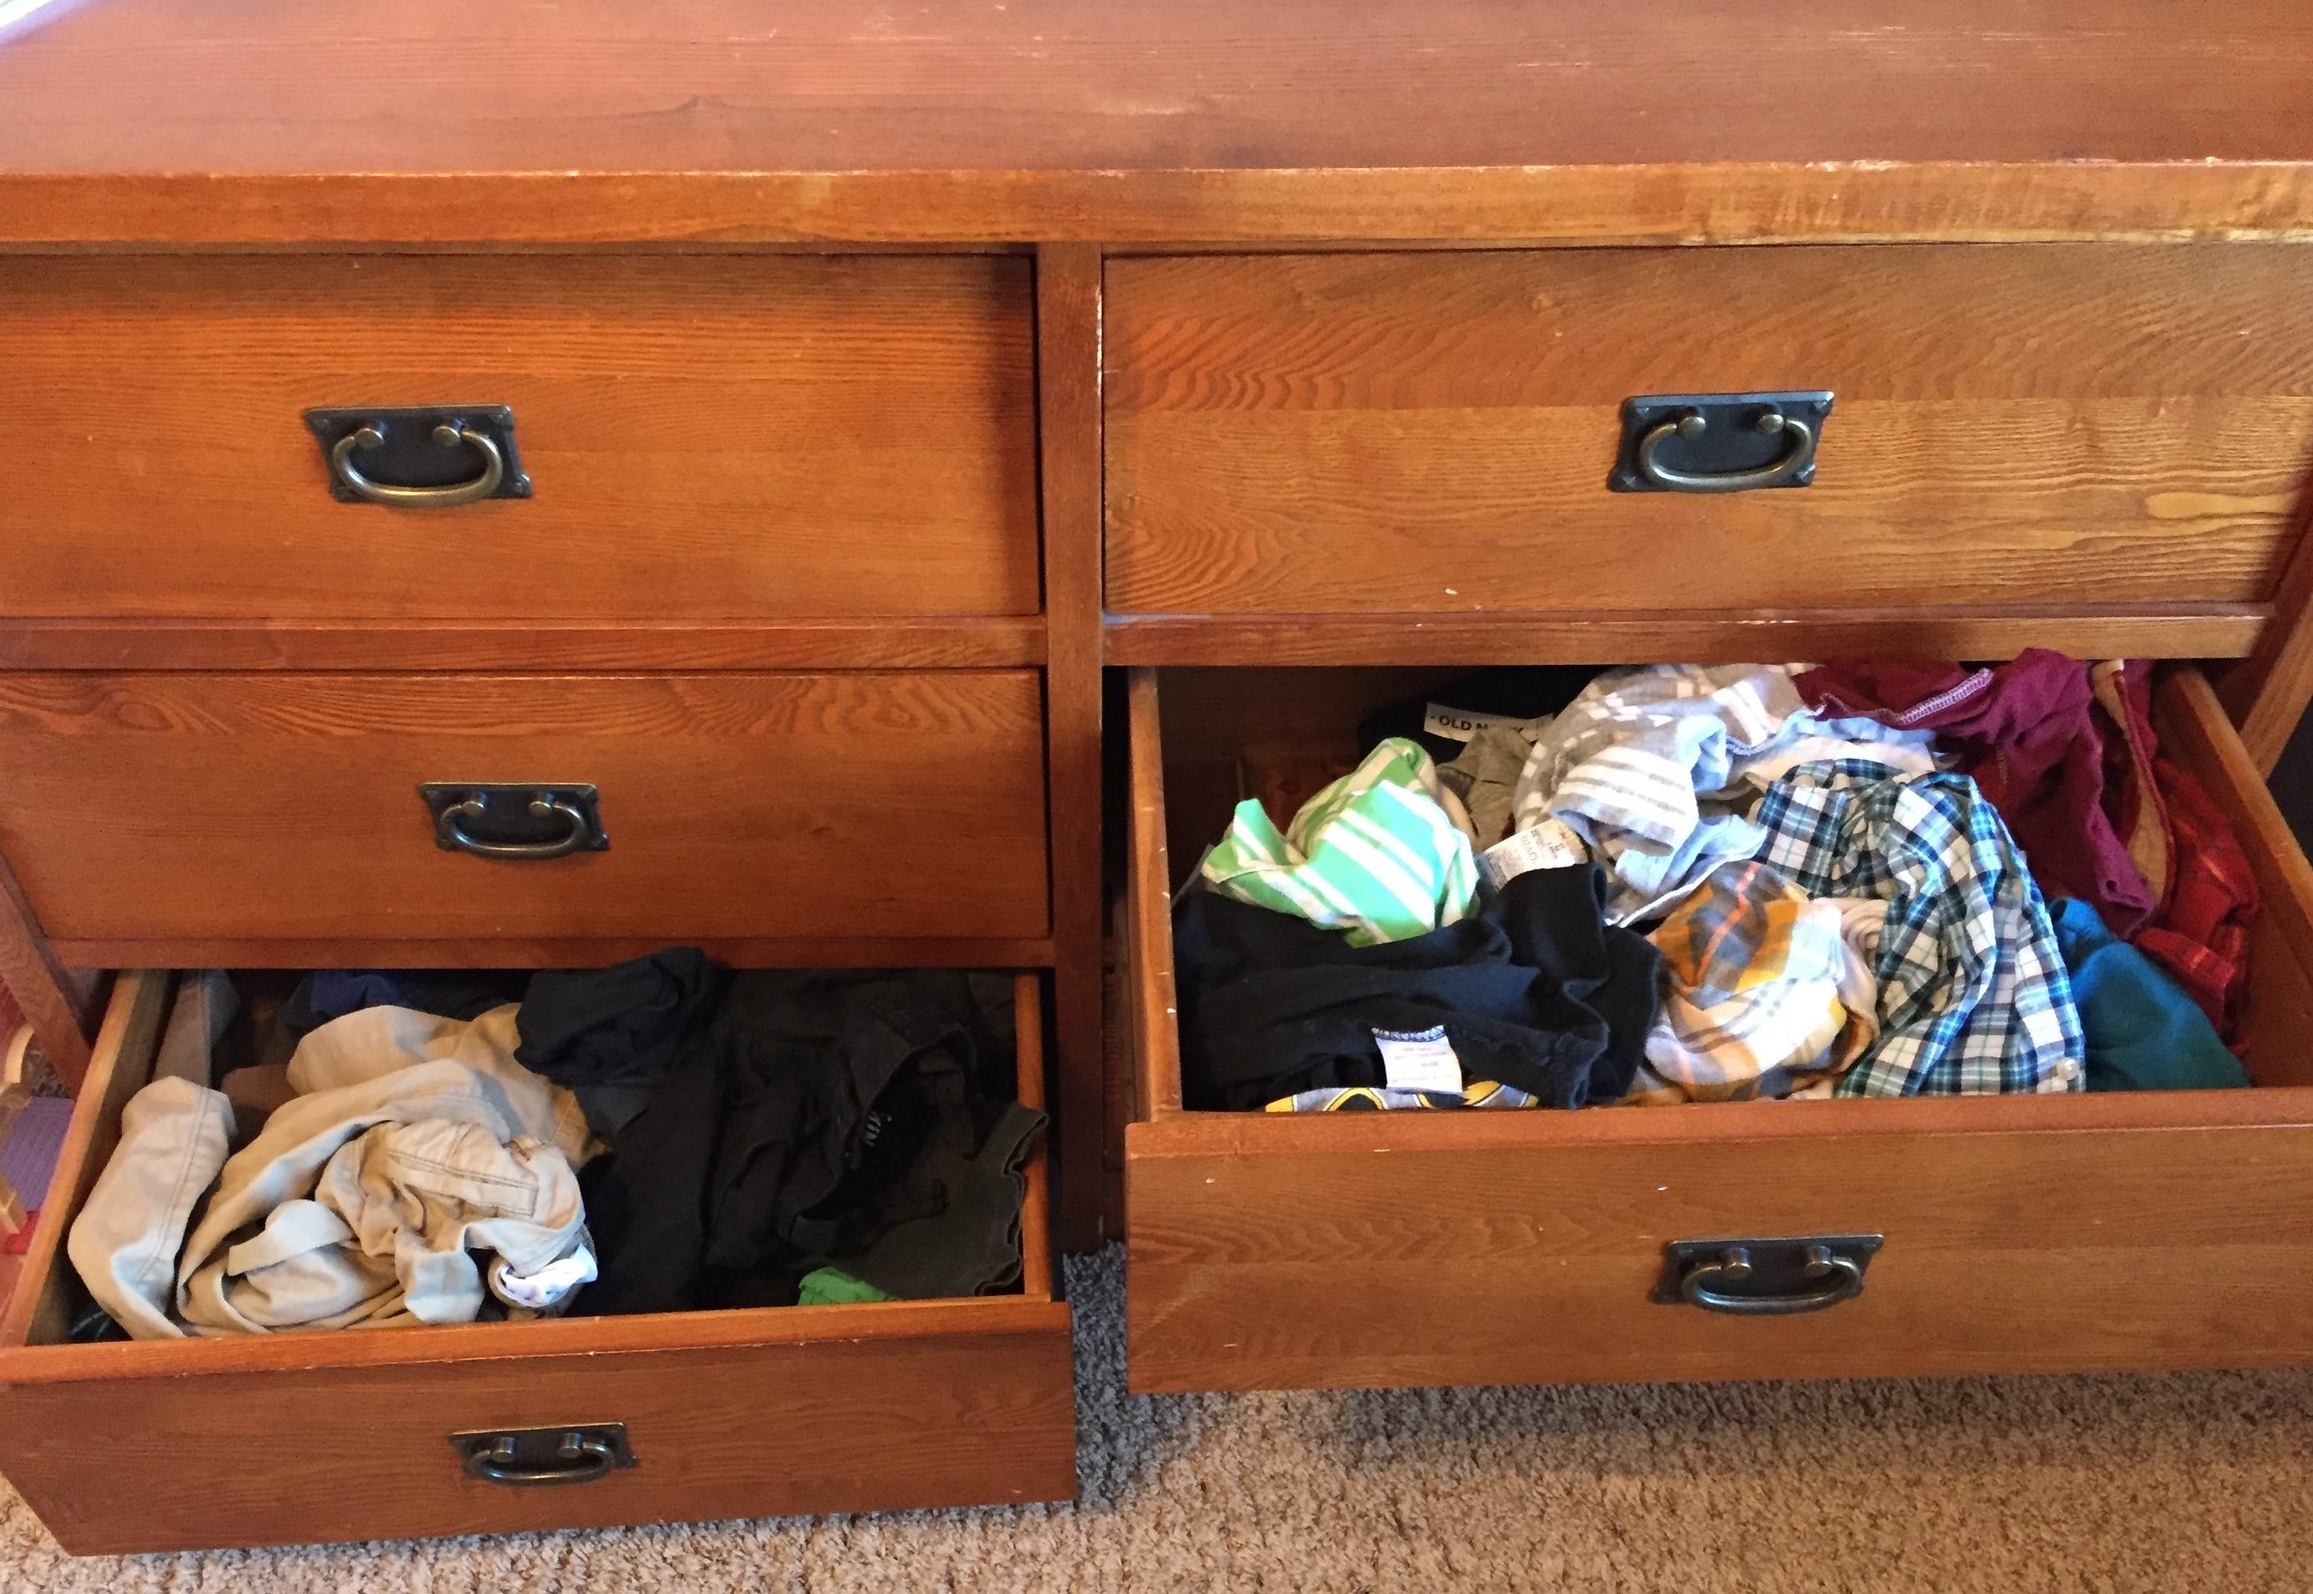 Molly  stopped folding her kids' play clothes, because the drawers just get messed up anyway. She still hangs school uniforms and church clothes.